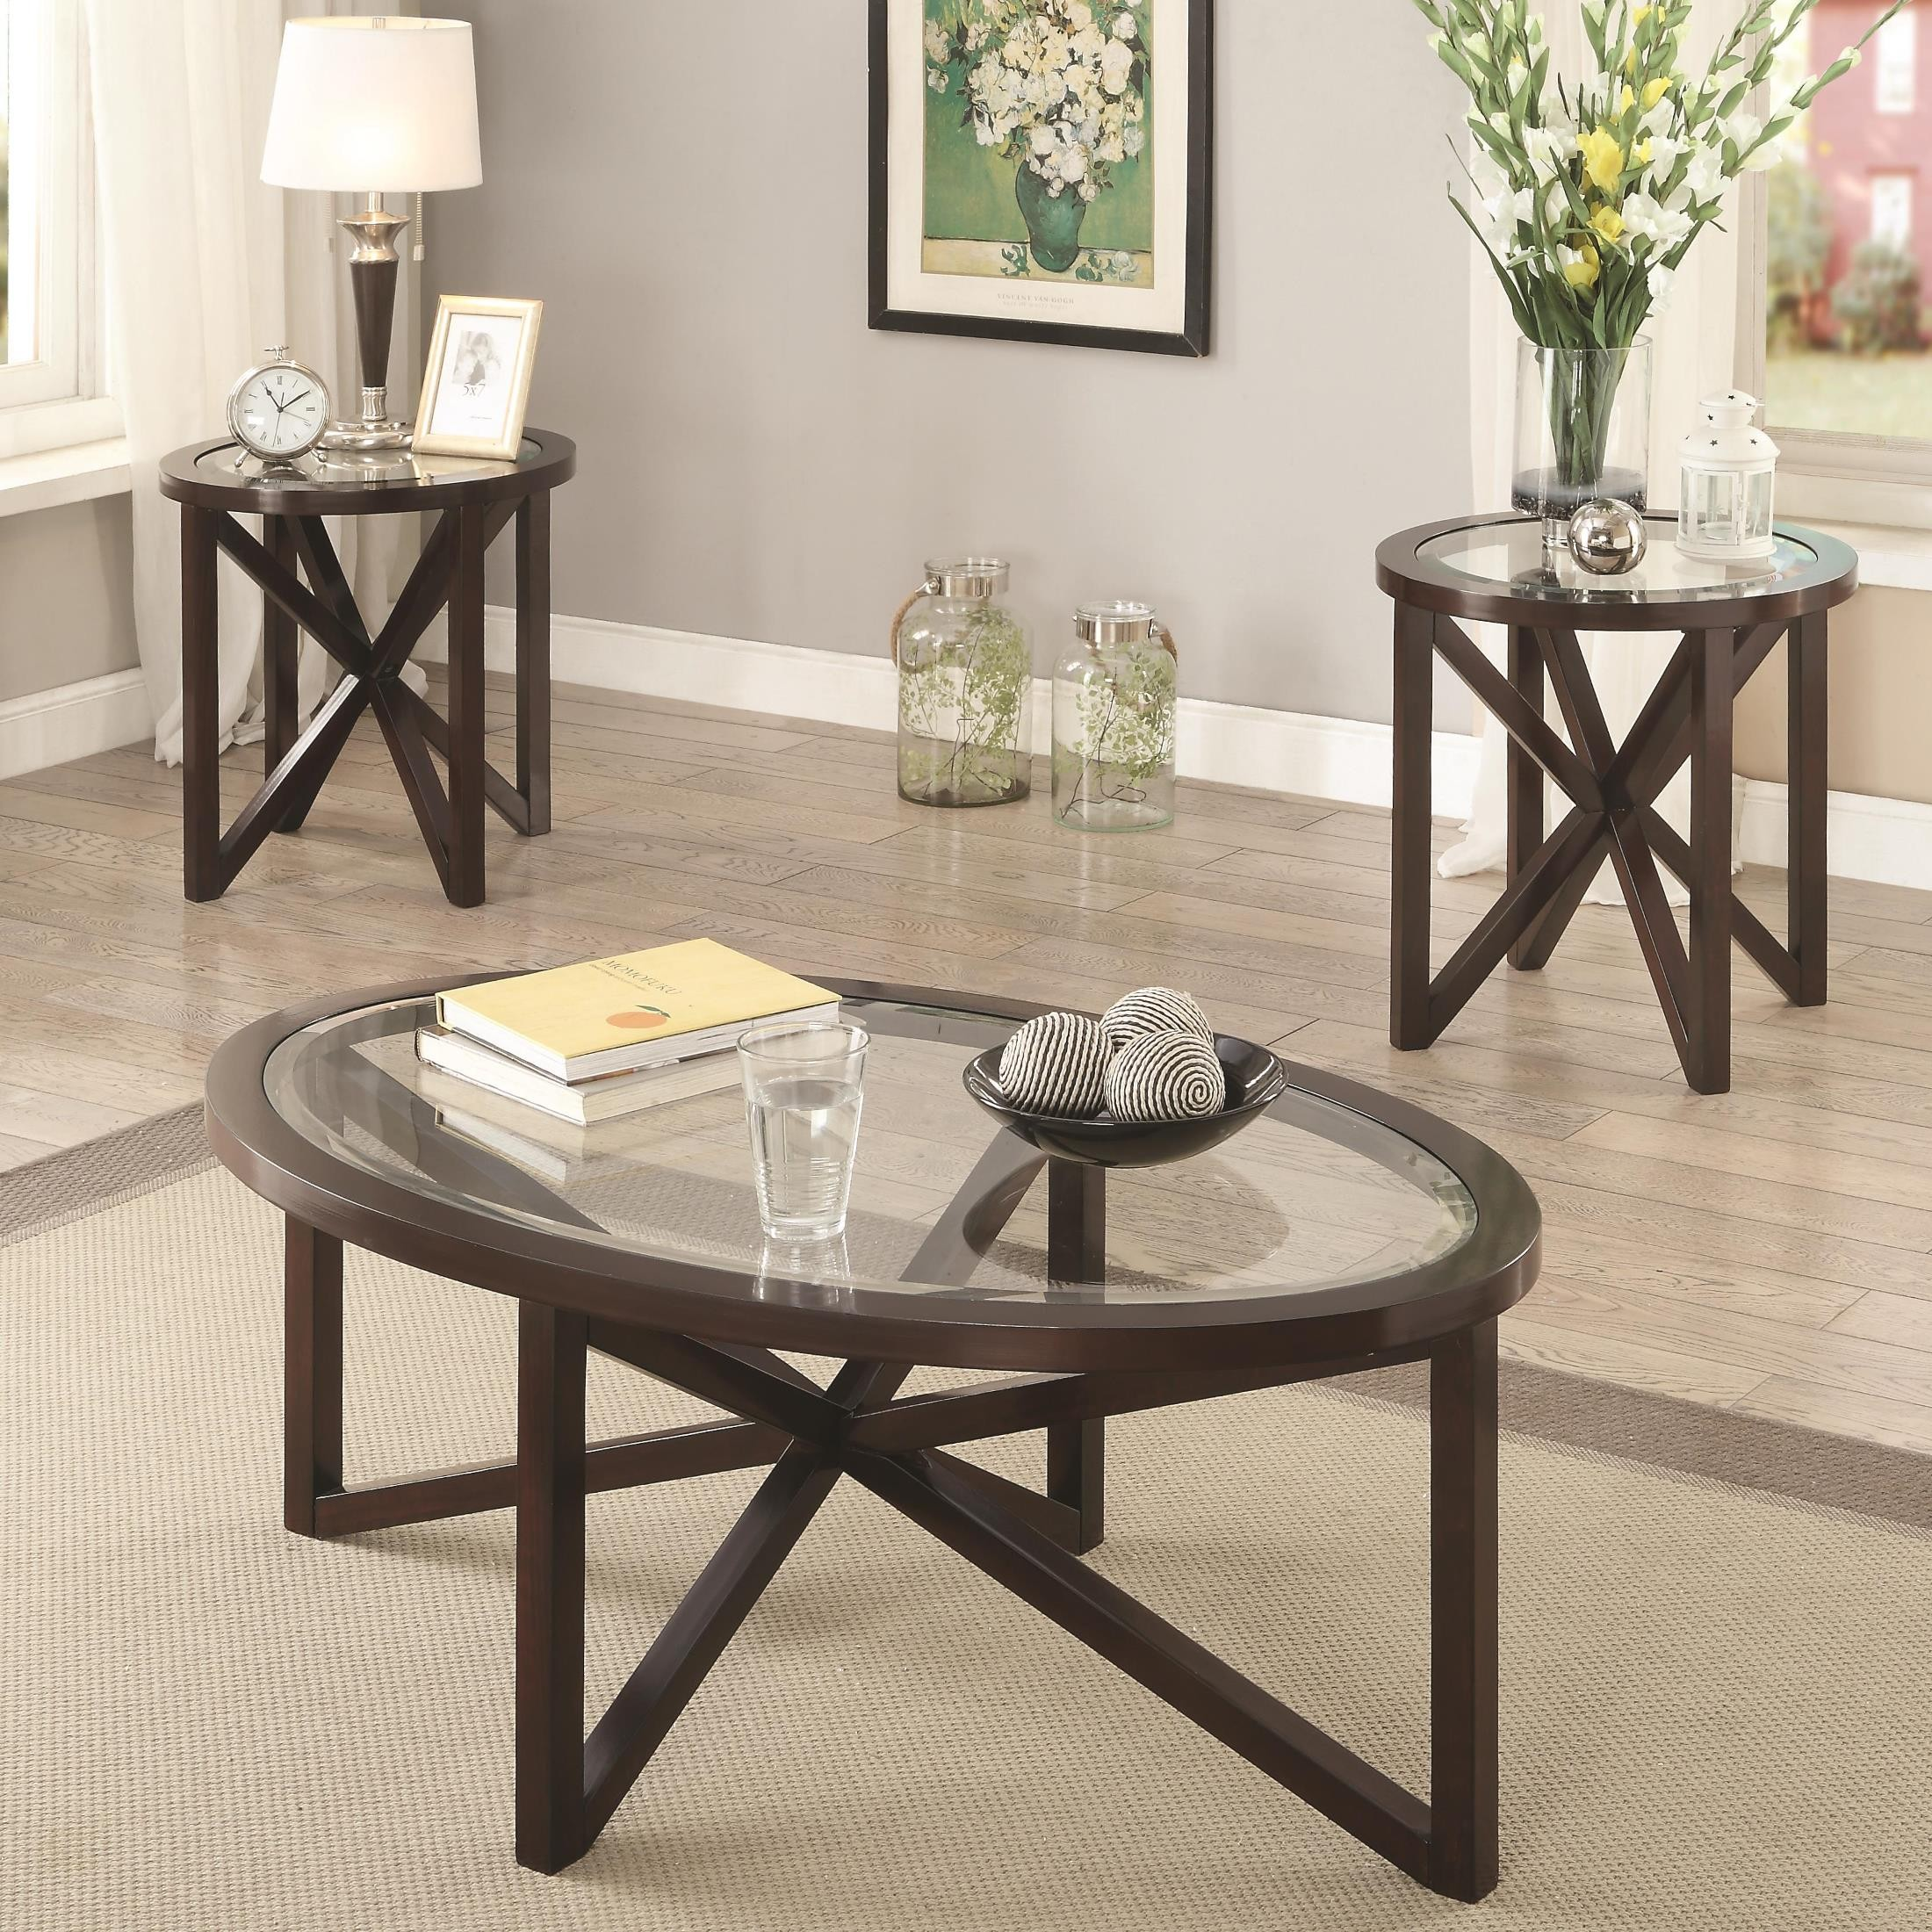 3 Piece Cappuccino Occasional Table Set from Coaster